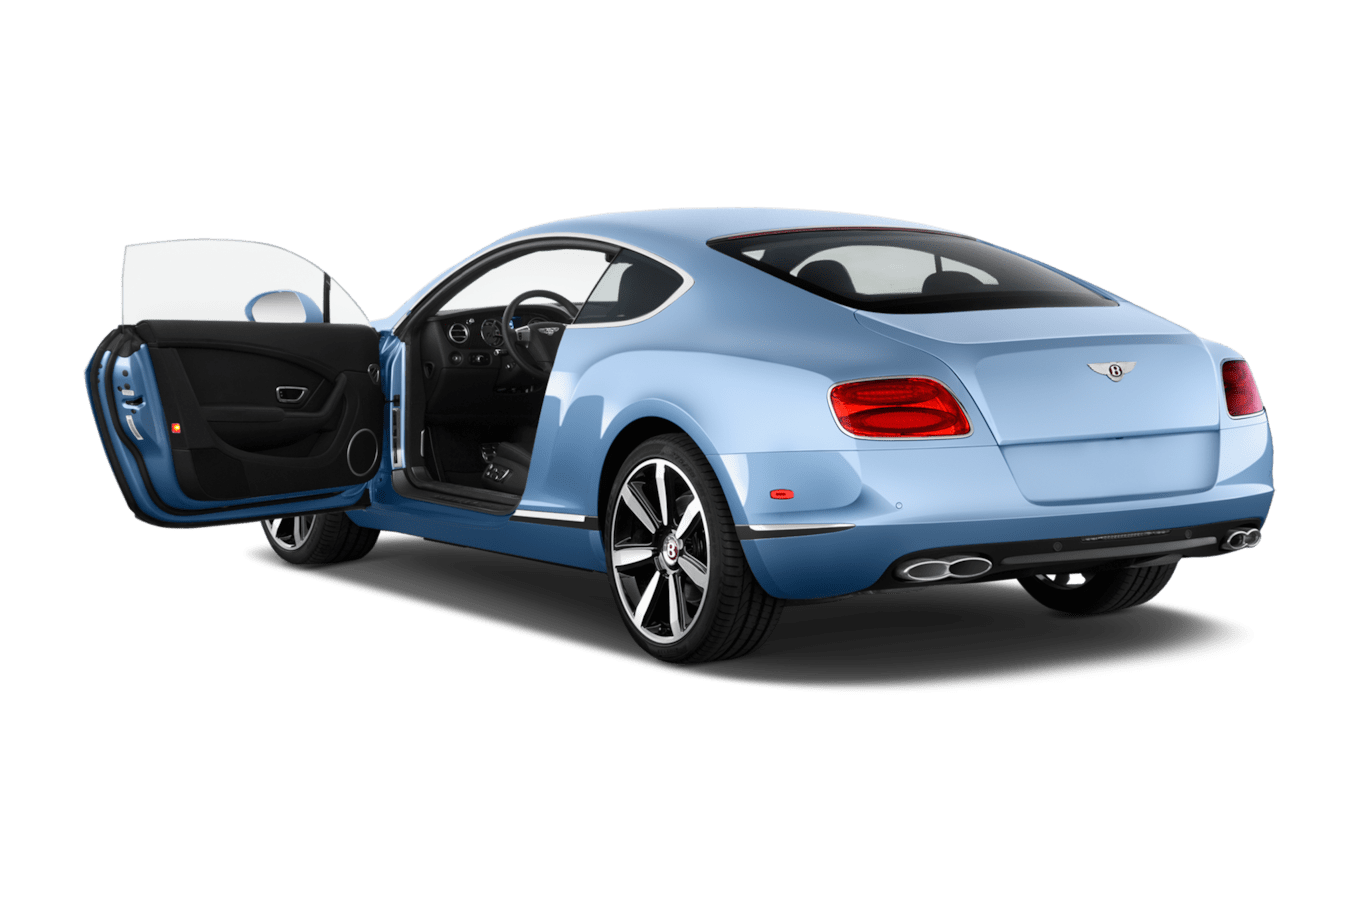 Le Meilleur 2014 Bentley Continental Gt Reviews And Rating Motortrend Ce Mois Ci